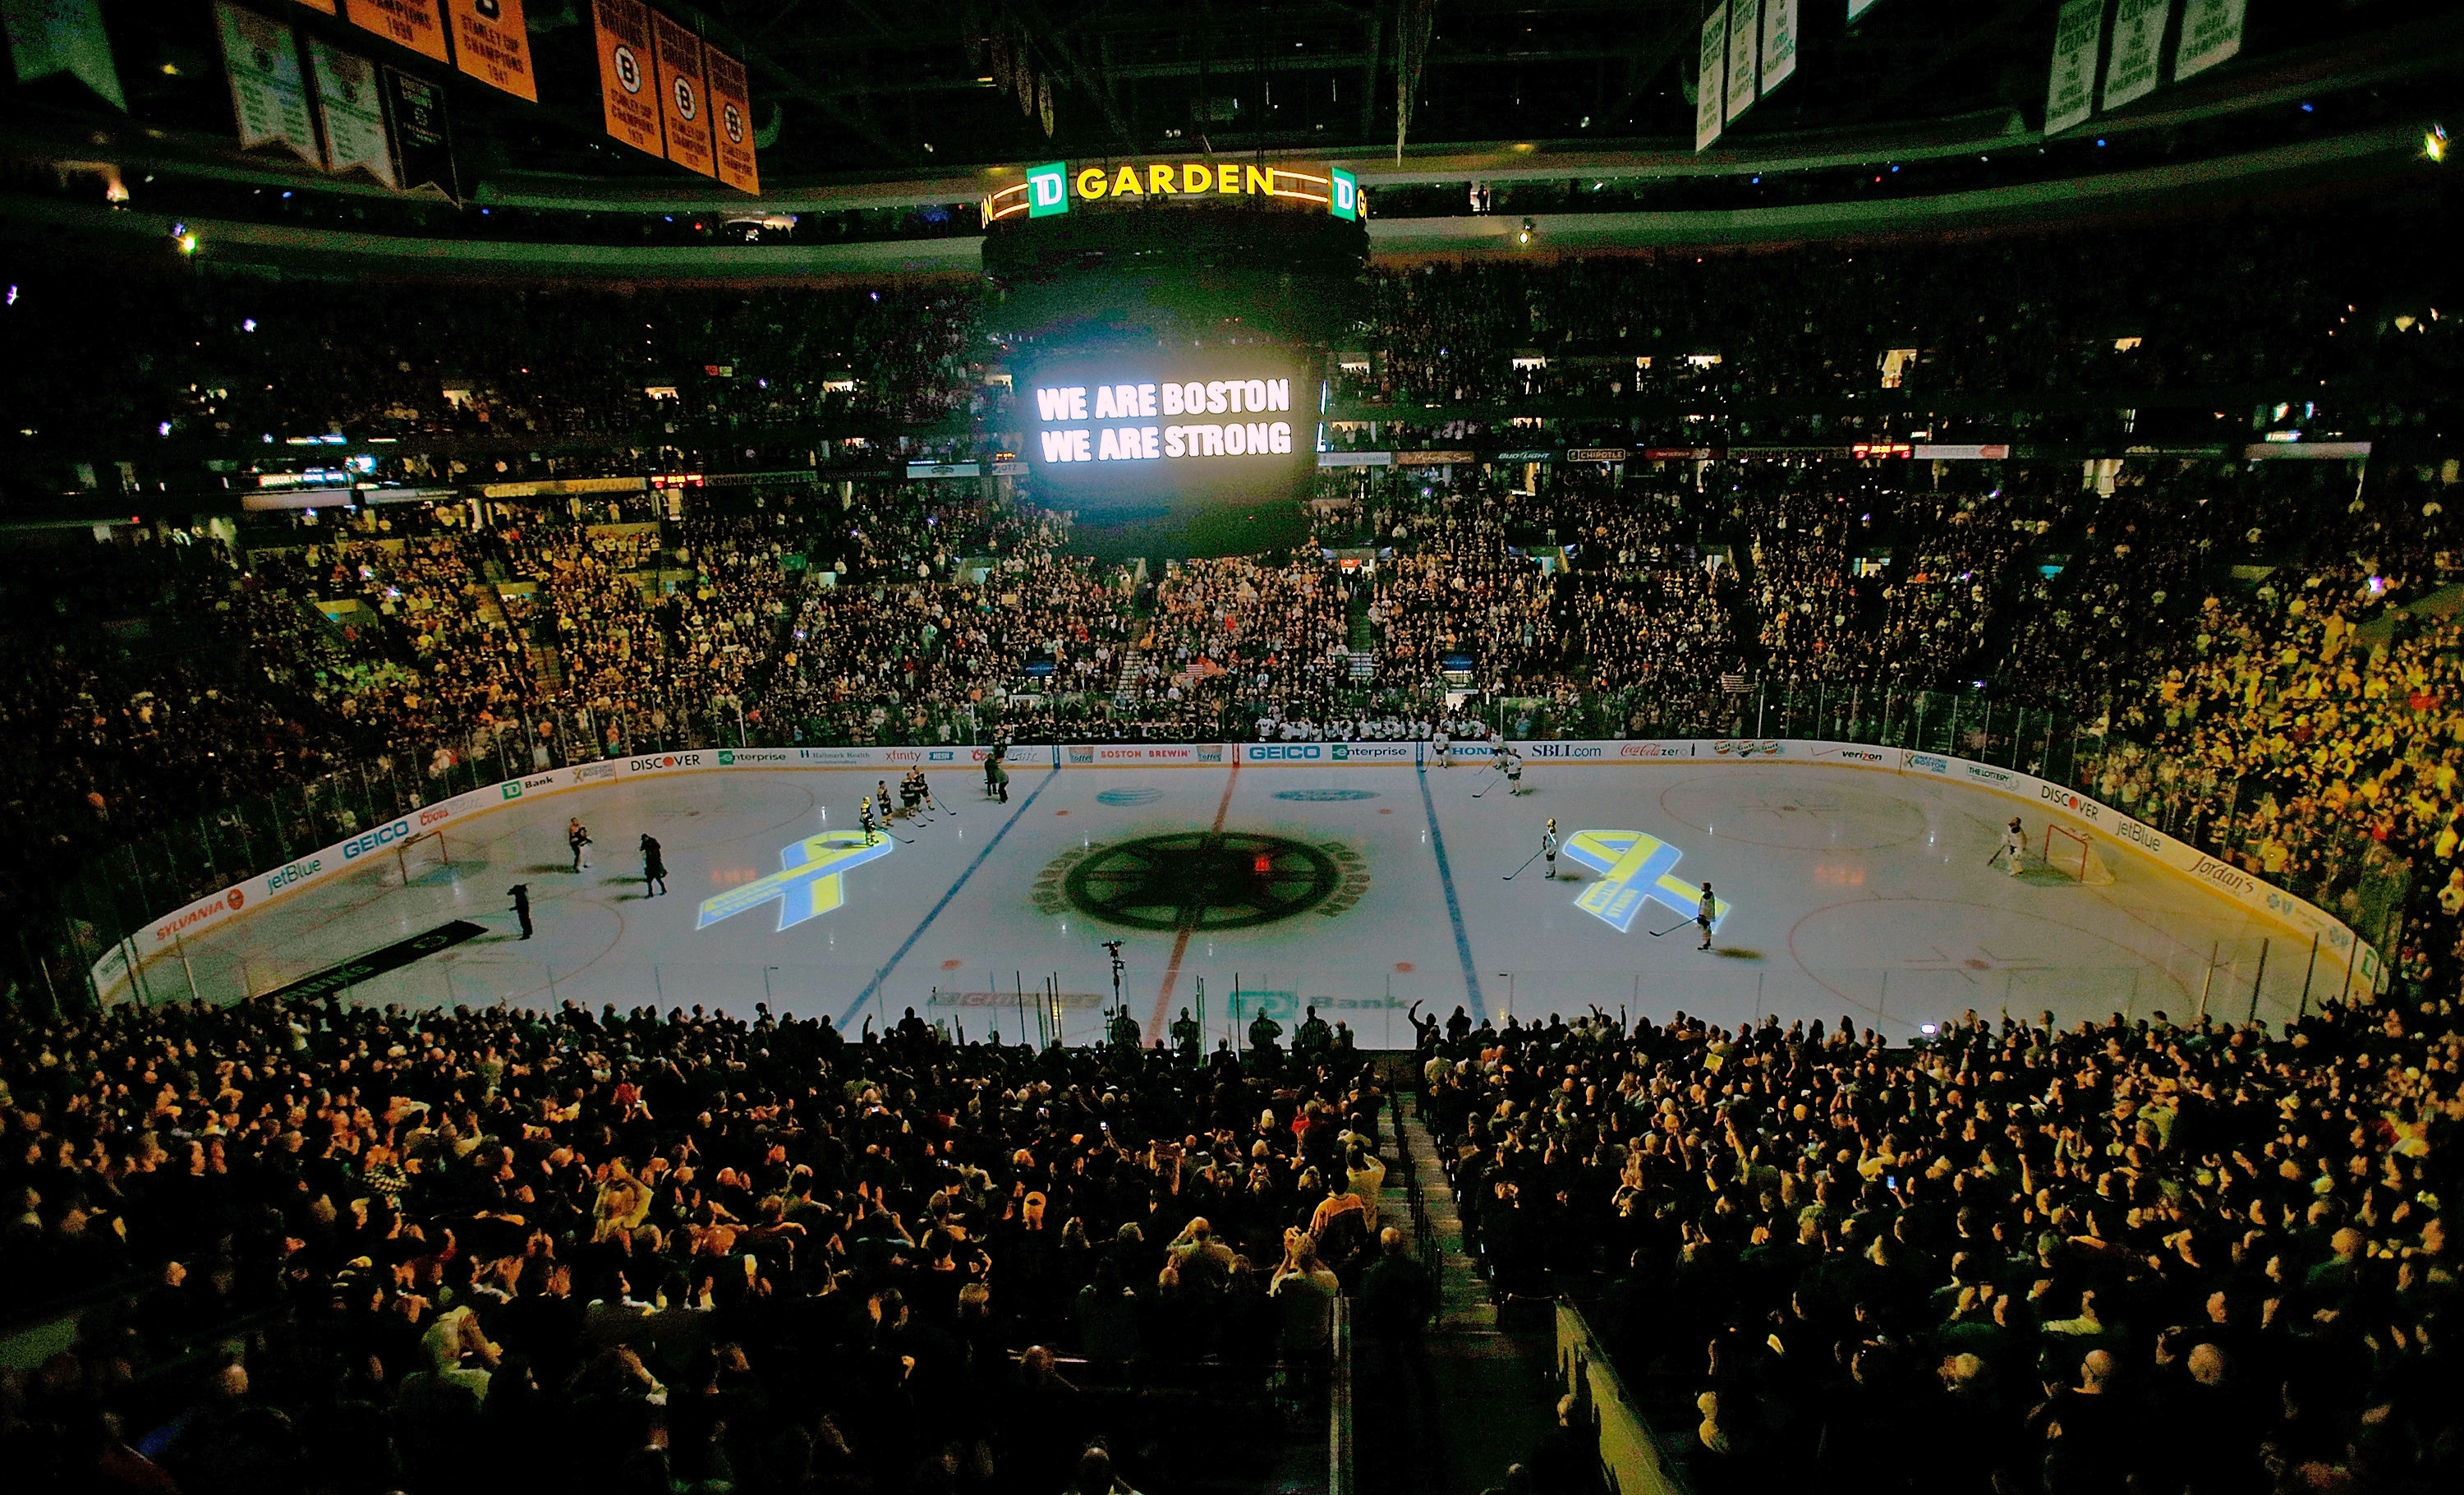 Projected images of the Boston Marathon Memorial Ribbon are seen on the ice during pregame ceremonies in remembrance of the bombing victims before Wednesday's game between the Sabres and the Bruins.